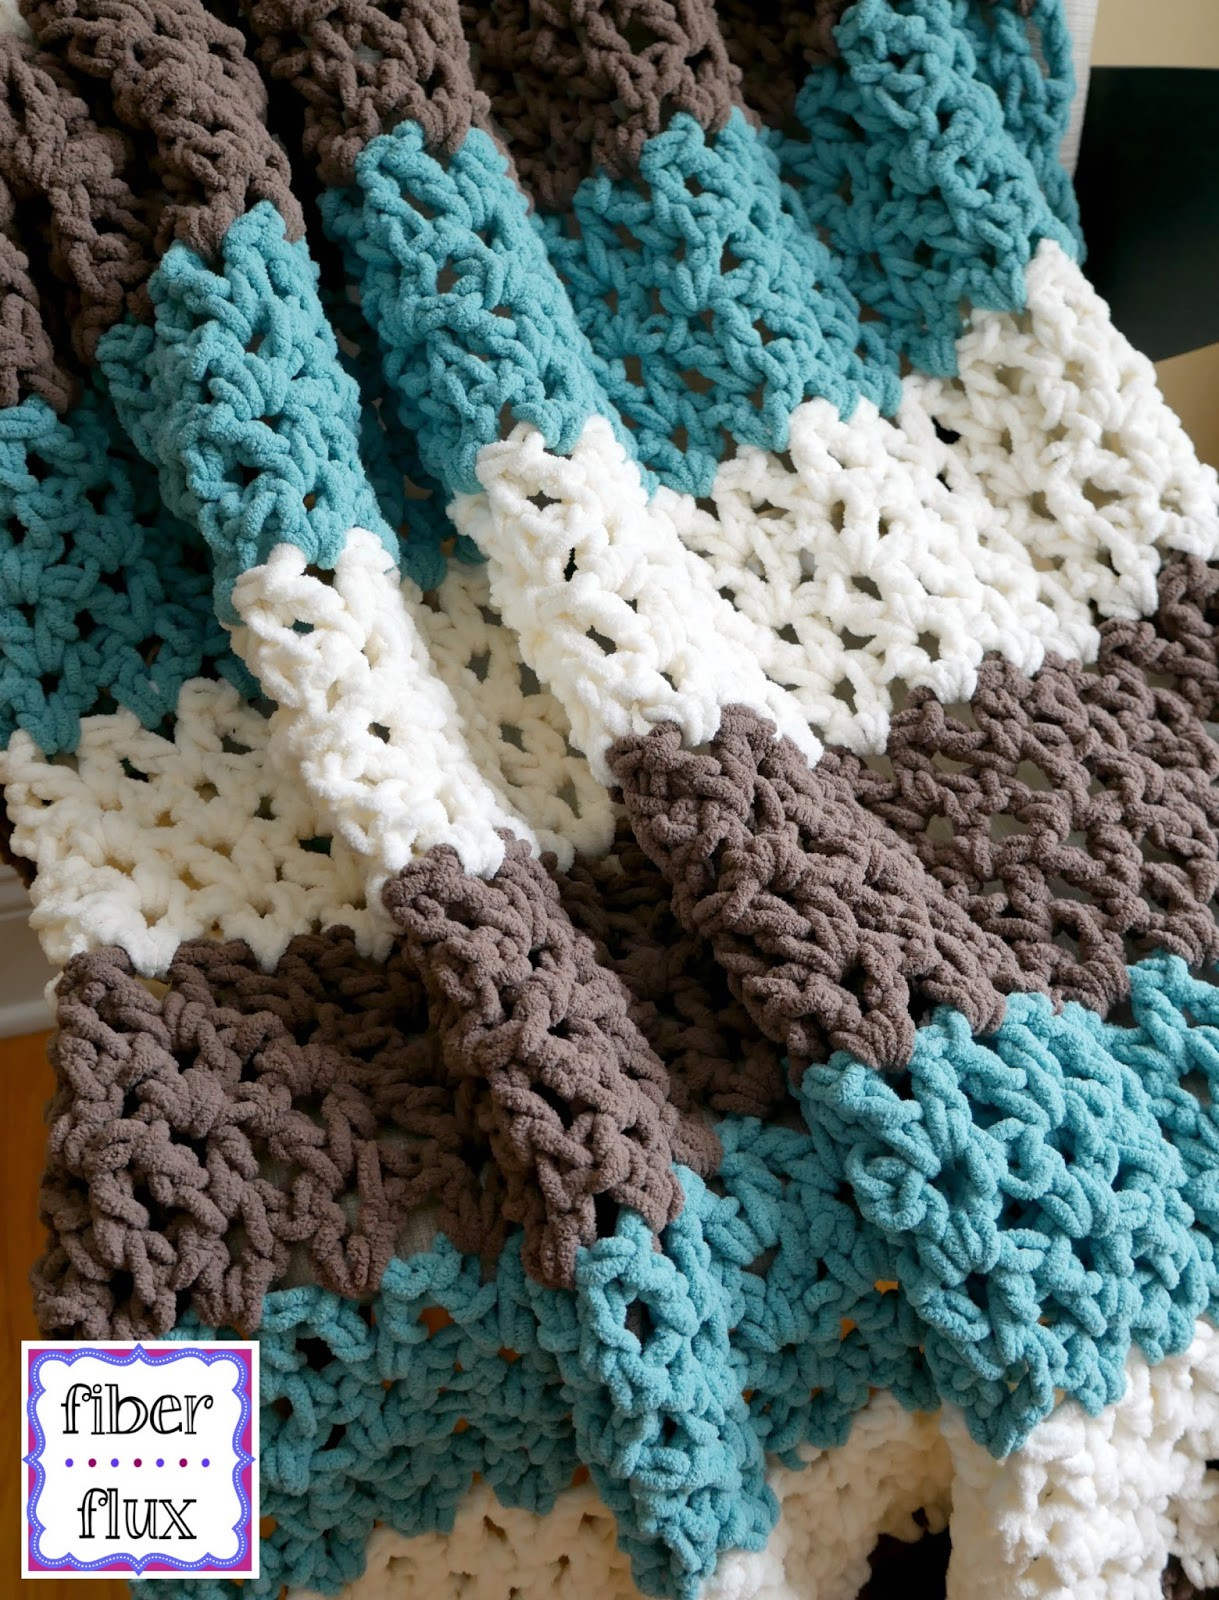 Crochet Throw Blanket Unique Fiber Flux Free Crochet Pattern Family Room Throw Of Great 44 Pics Crochet Throw Blanket